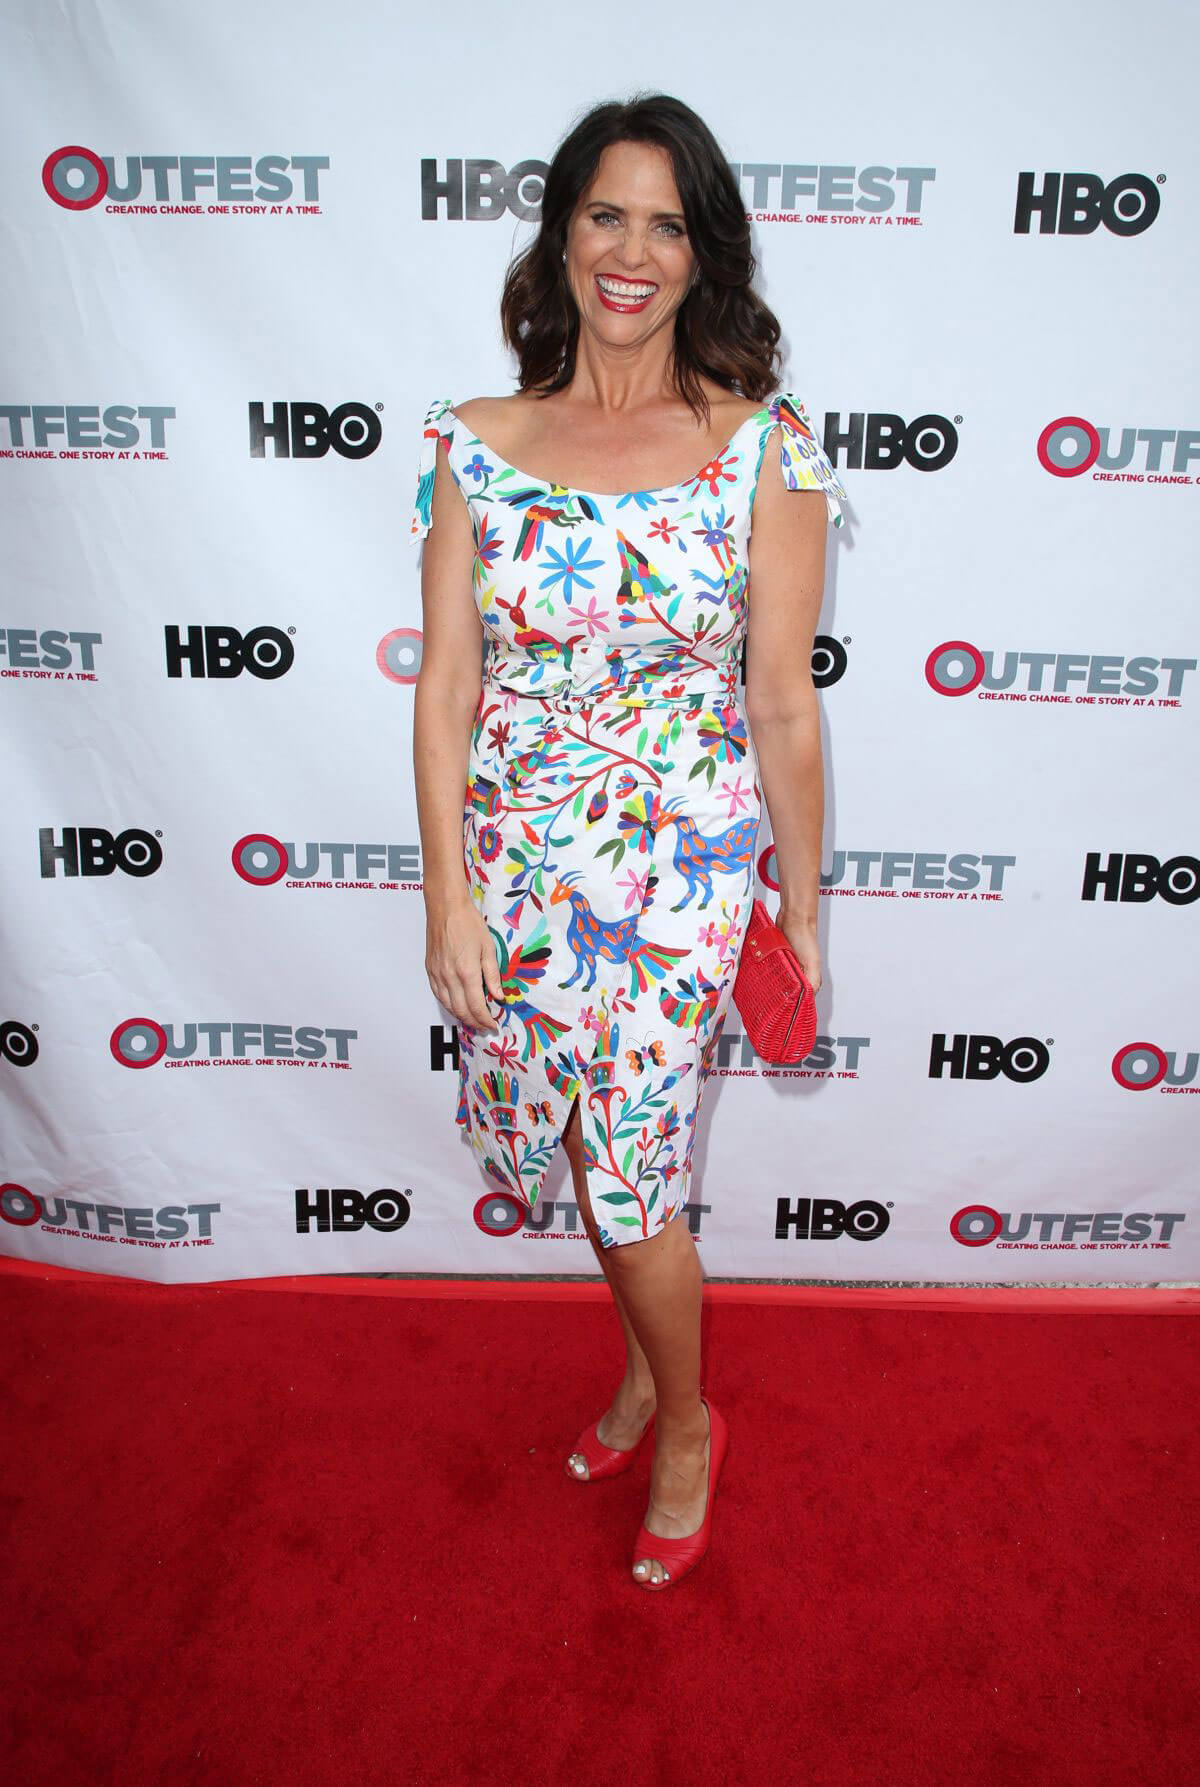 Amy Landecker Stills at Transparent Season 4 Screening at 2017 Outfest Los Angeles LGBT Film Festival